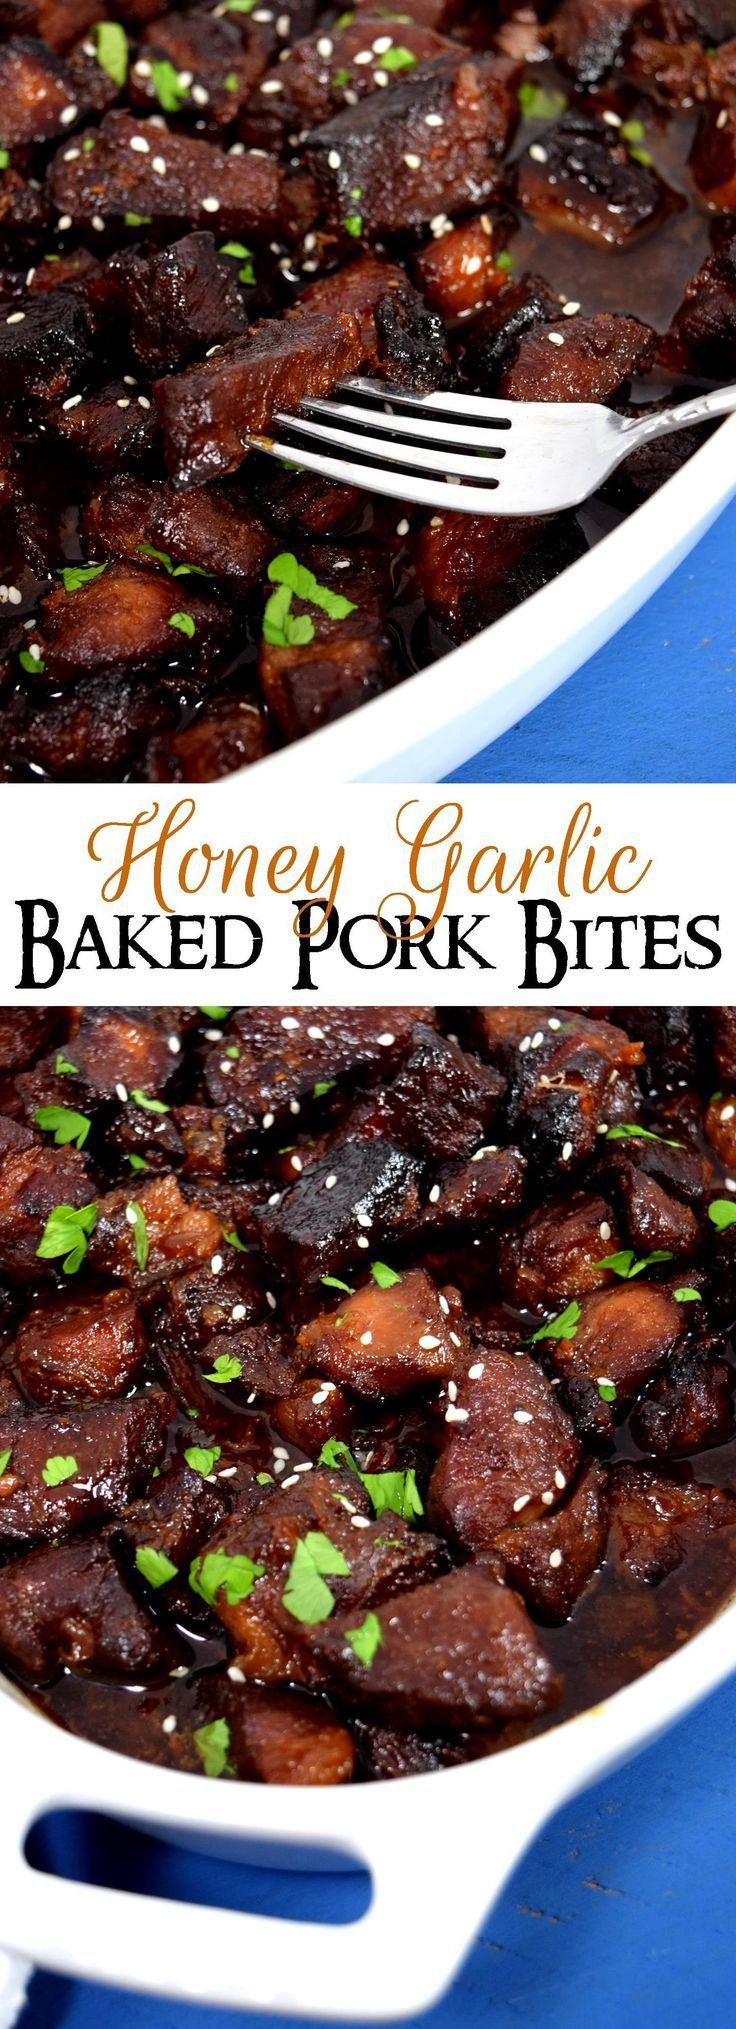 Honey Garlic Baked Pork Bites | A delicious and healthy new spin on ribs. Tasty honey and garlic flavors mix perfectly in this dish! (Mix Asian White)